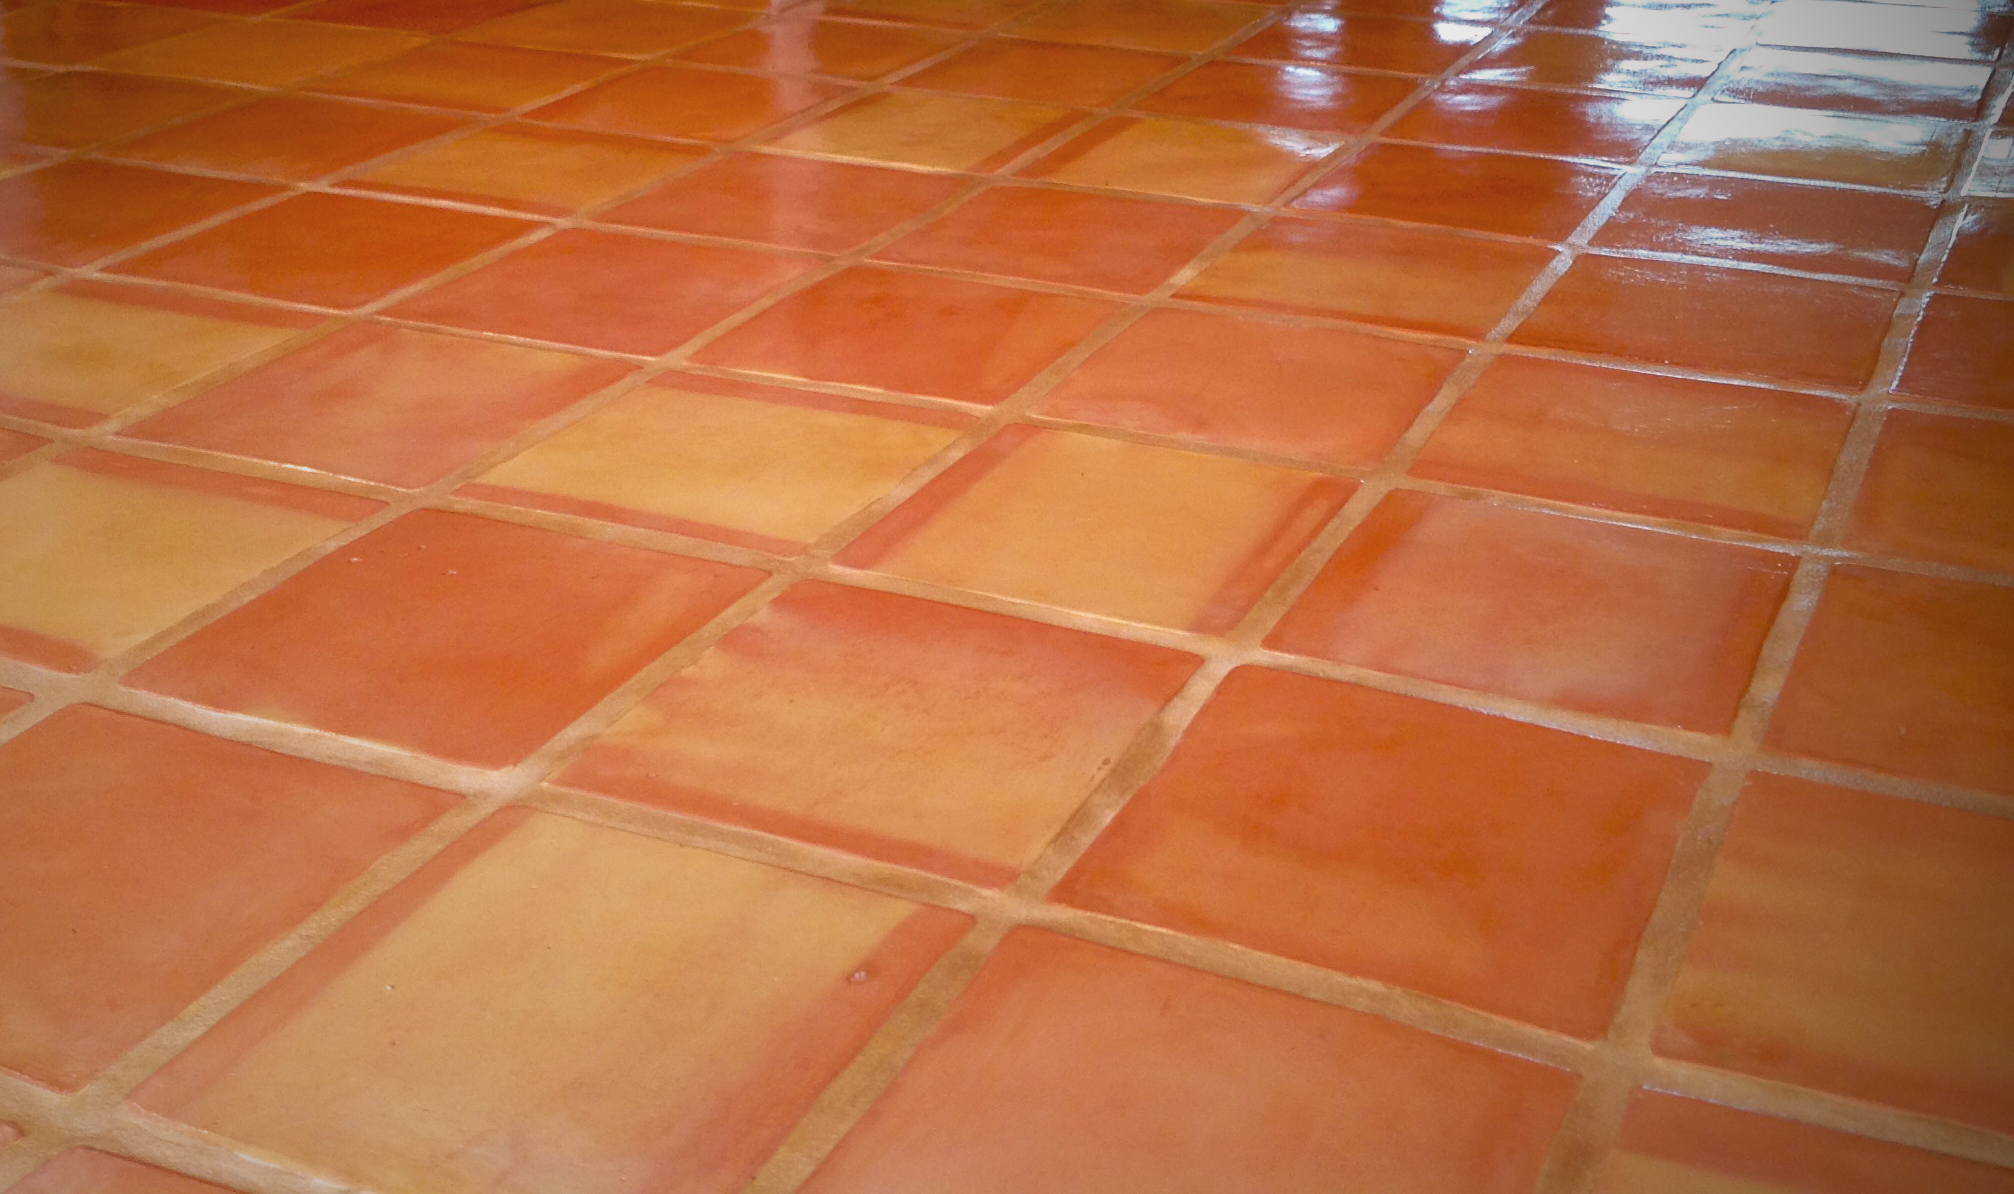 Saltillo Mexican Tile Cleaning And Restoration Servicea San Diego Ca